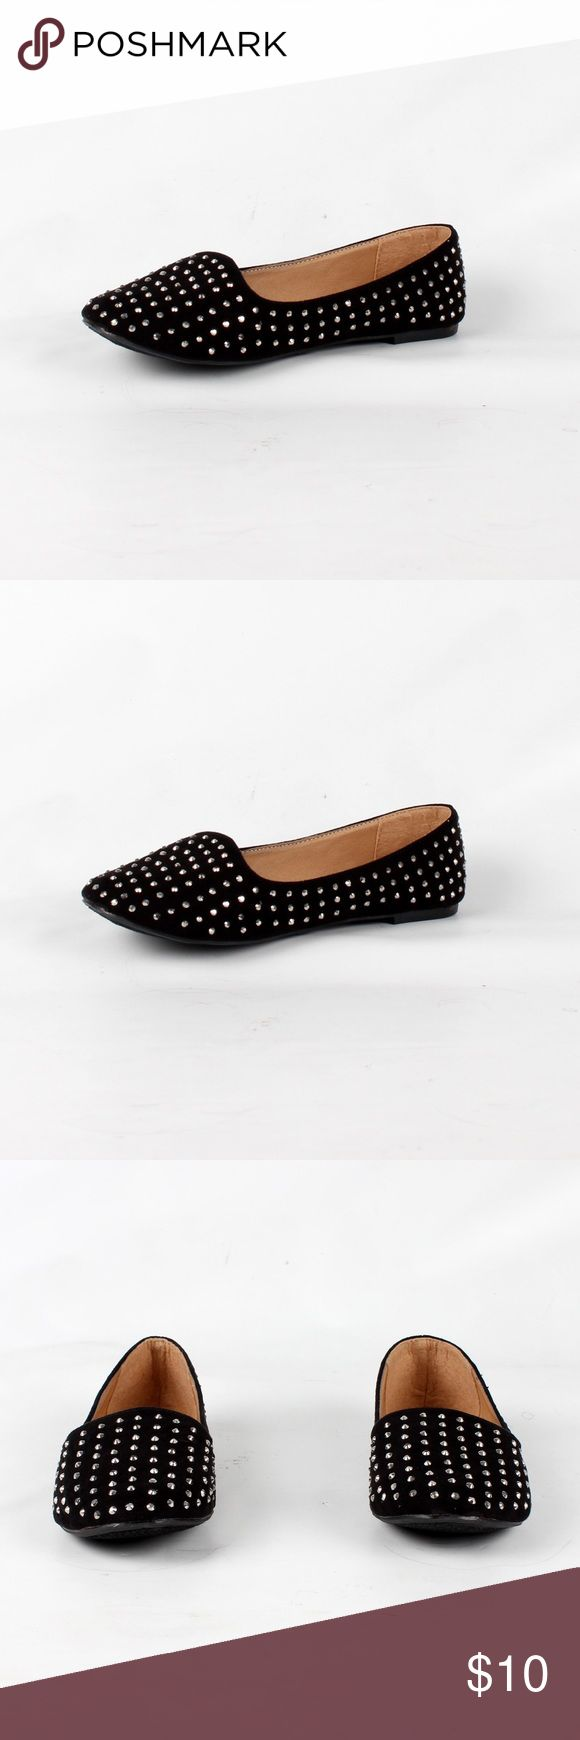 Rhinestones black suede loafer (Jolene-02 Black) ¥ my boutique ¥                                                                                                                        😍All items brand new 😢No price negotiation please ✌🏻️Bundle for discounts 😬No trades & PayPal 😊Please feel free to ask any questions Shoes Flats & Loafers